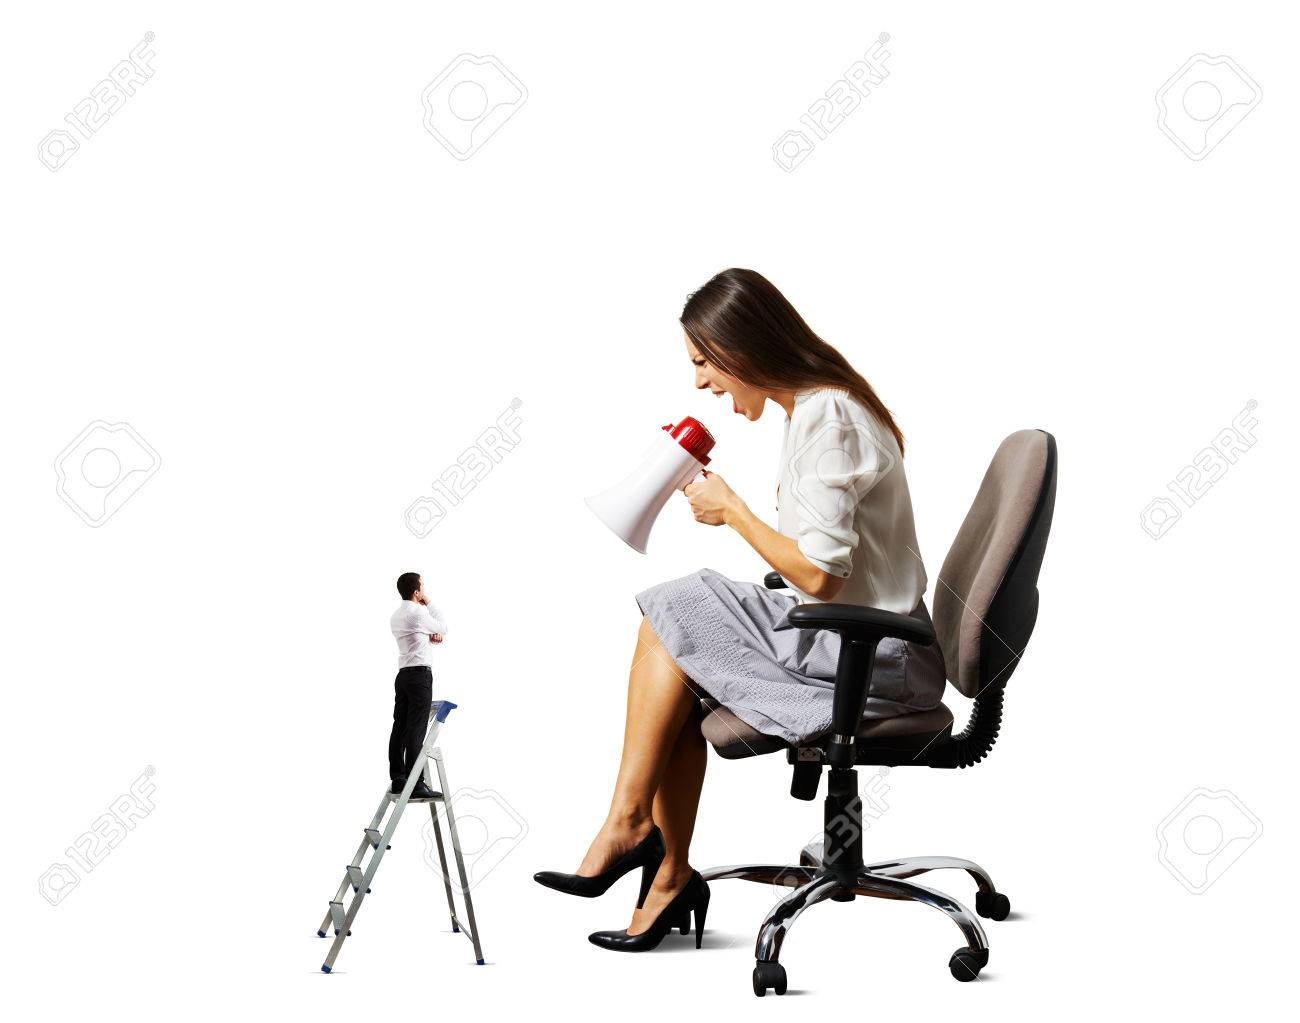 aggressive woman screaming at small man on the stepladder over white background Stock Photo - 27696776